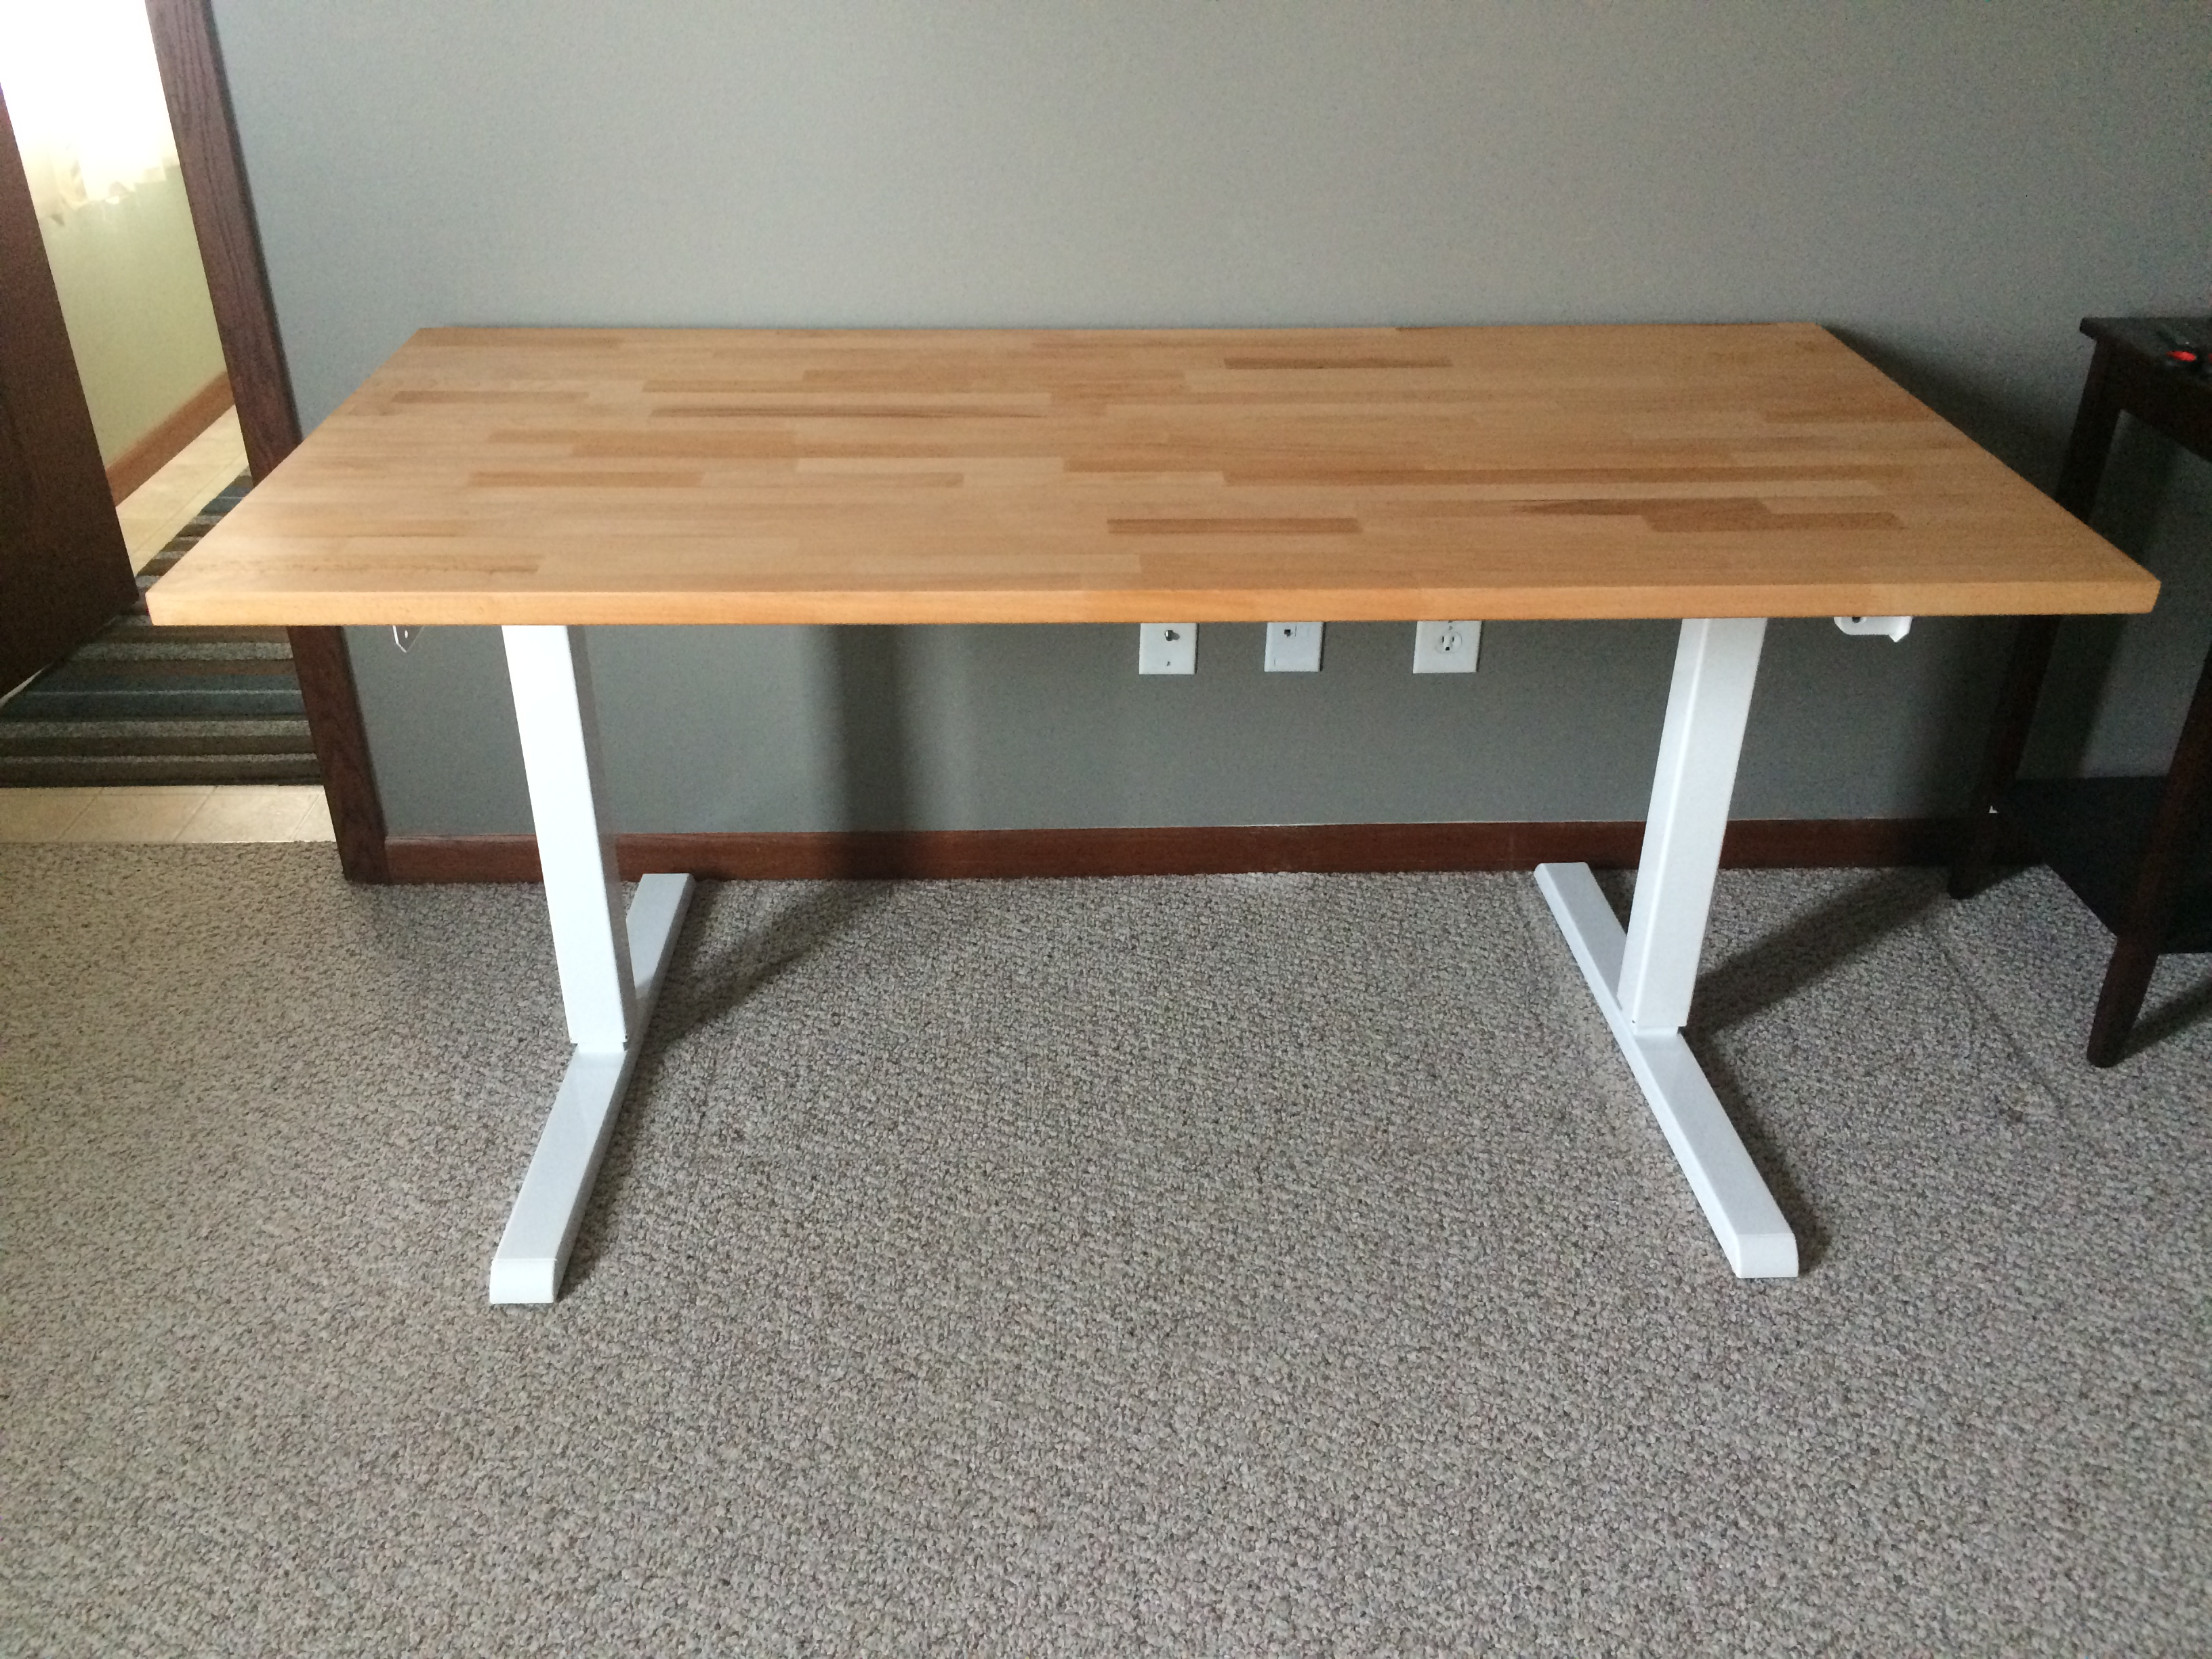 ikea id tops desk hack standing